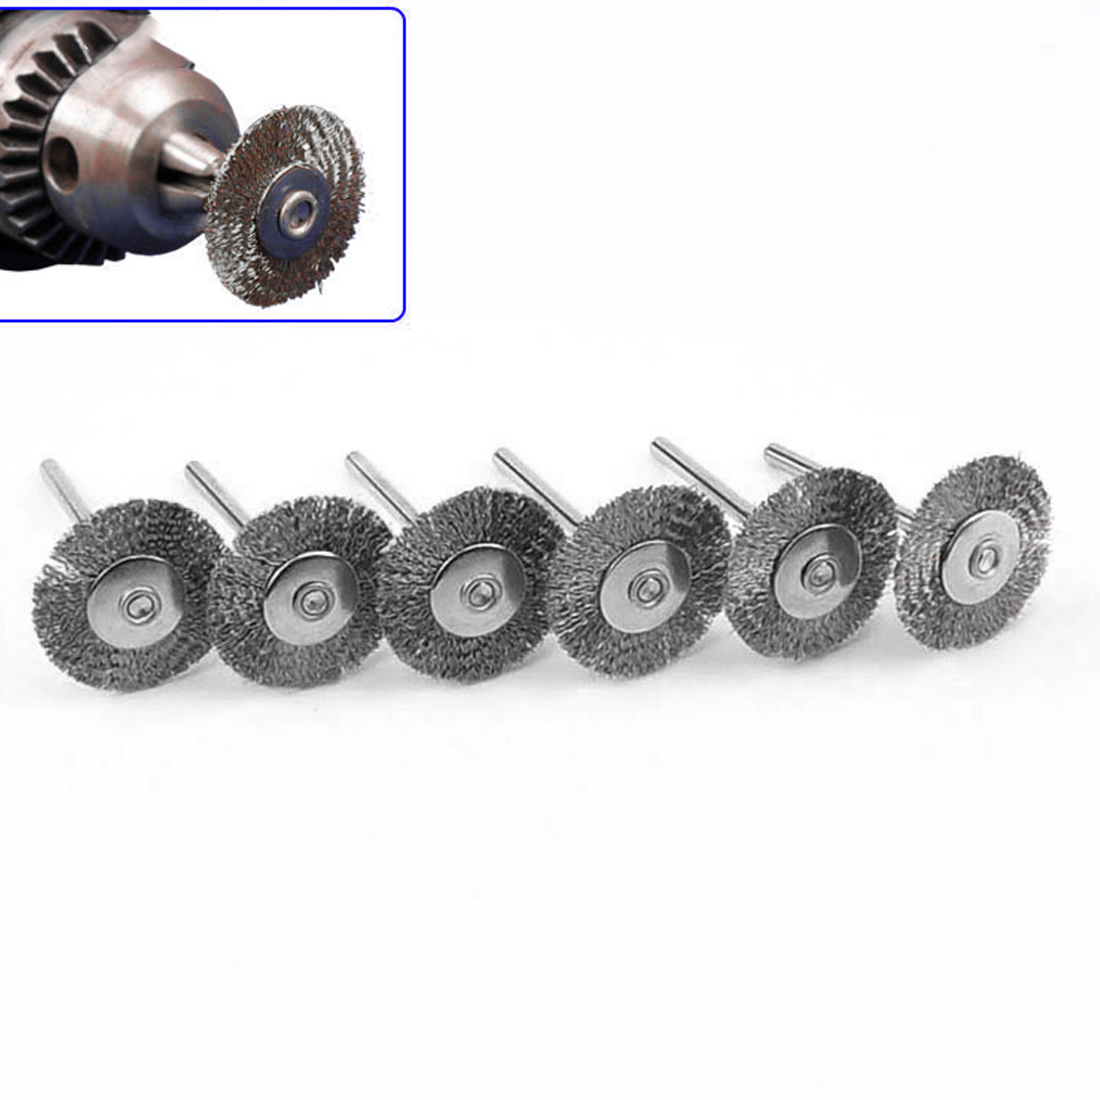 10Pcs Dremel Accessories 22mm Steel Rotary Brush Dremel Wire Wheel Brushes For Grinder Rotary Tool For Mini Drill Polishing